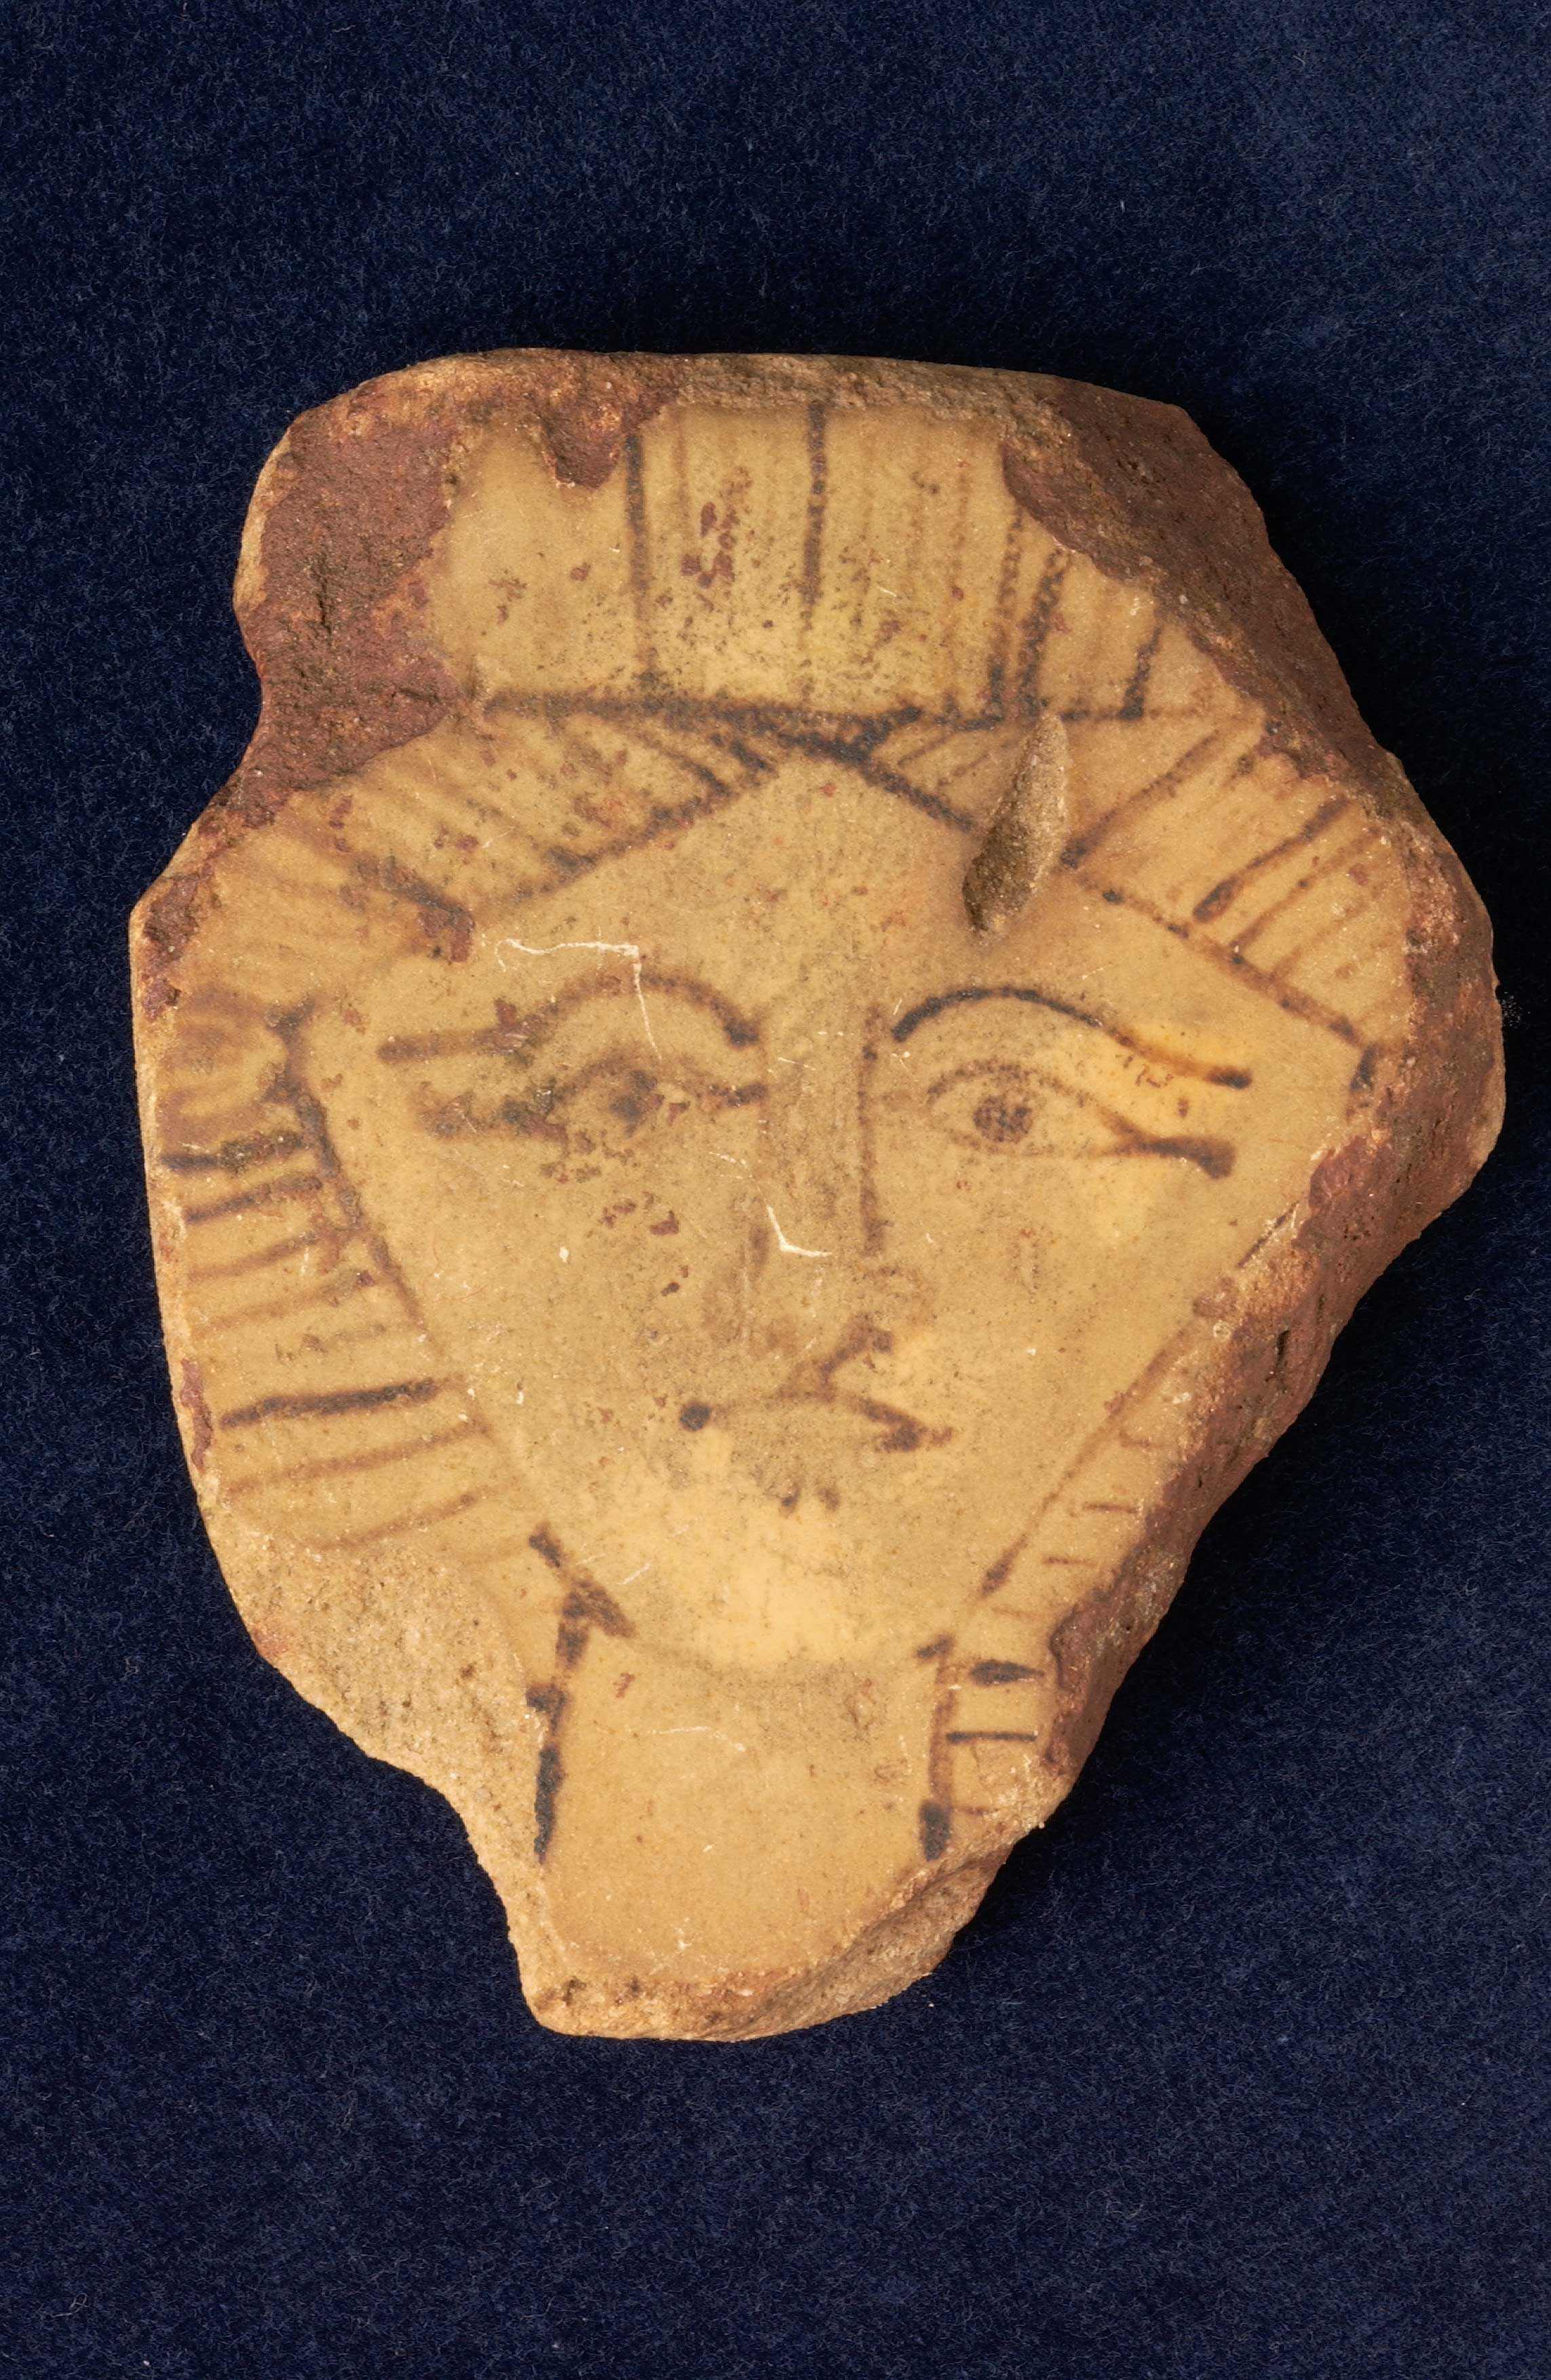 Hathor-head plaque